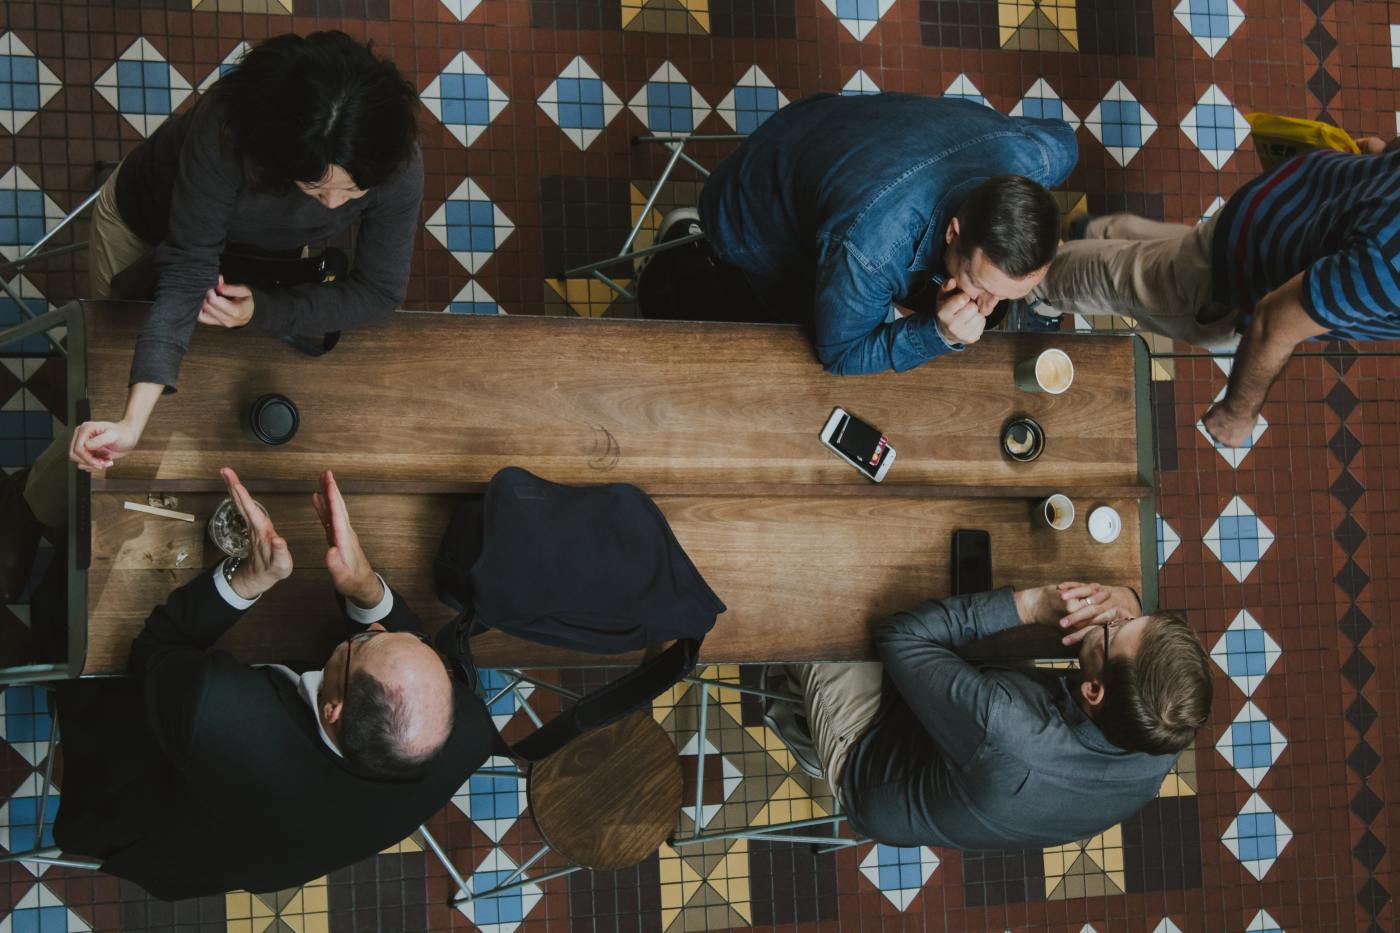 Overhead view of 4 people having discussions at a table in Arbitration